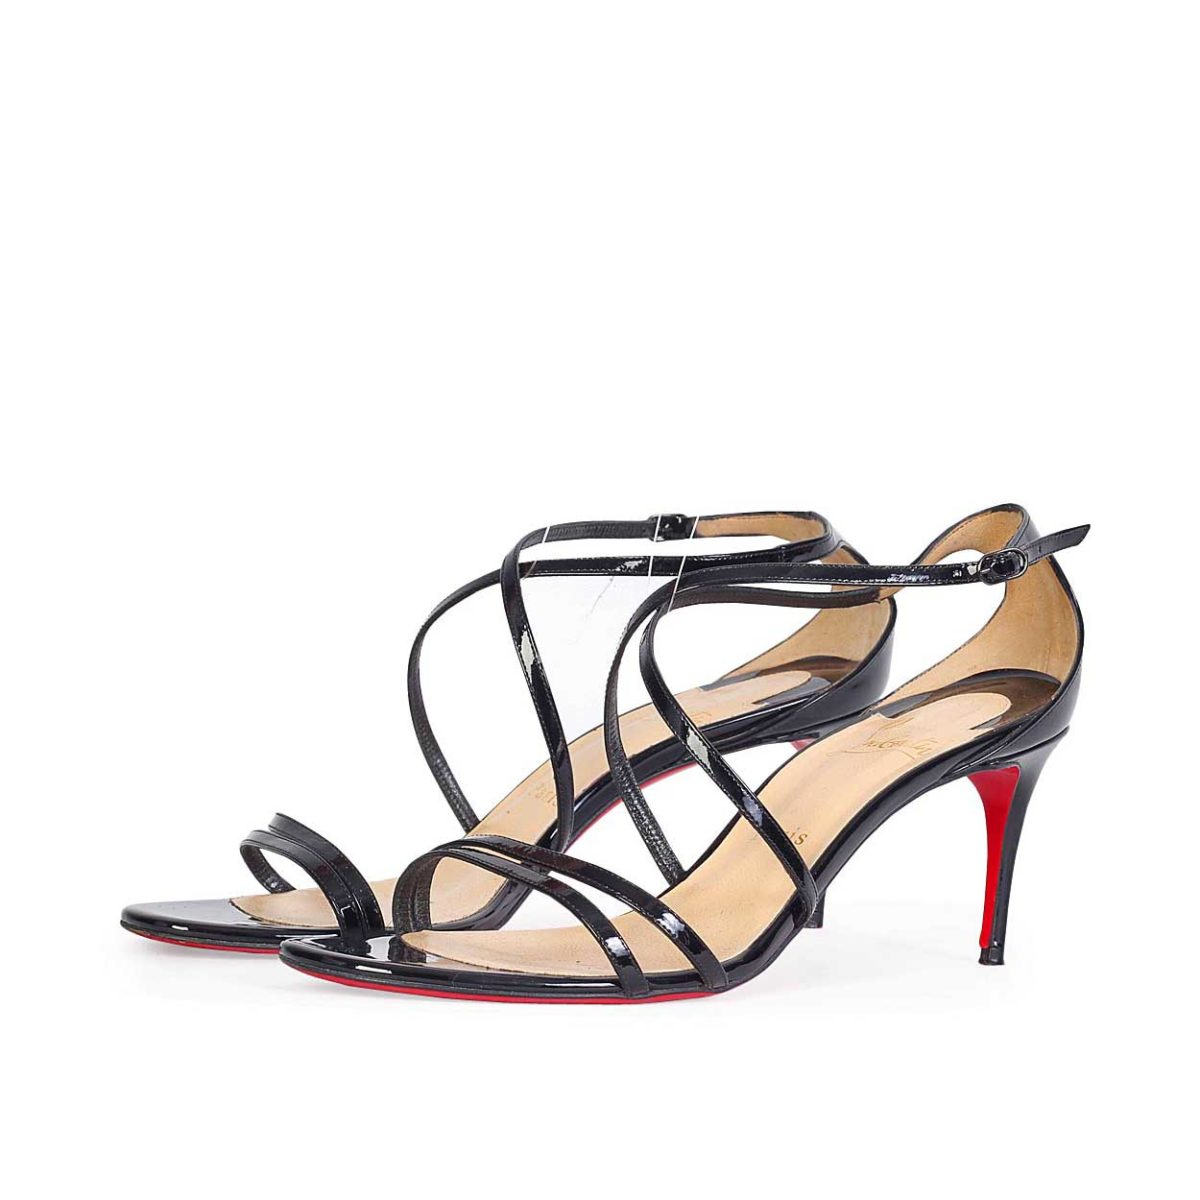 free shipping 74cf1 0e015 CHRISTIAN LOUBOUTIN Patent Leather Gwynitta 100 Strappy Sandals - S: 39 (6)